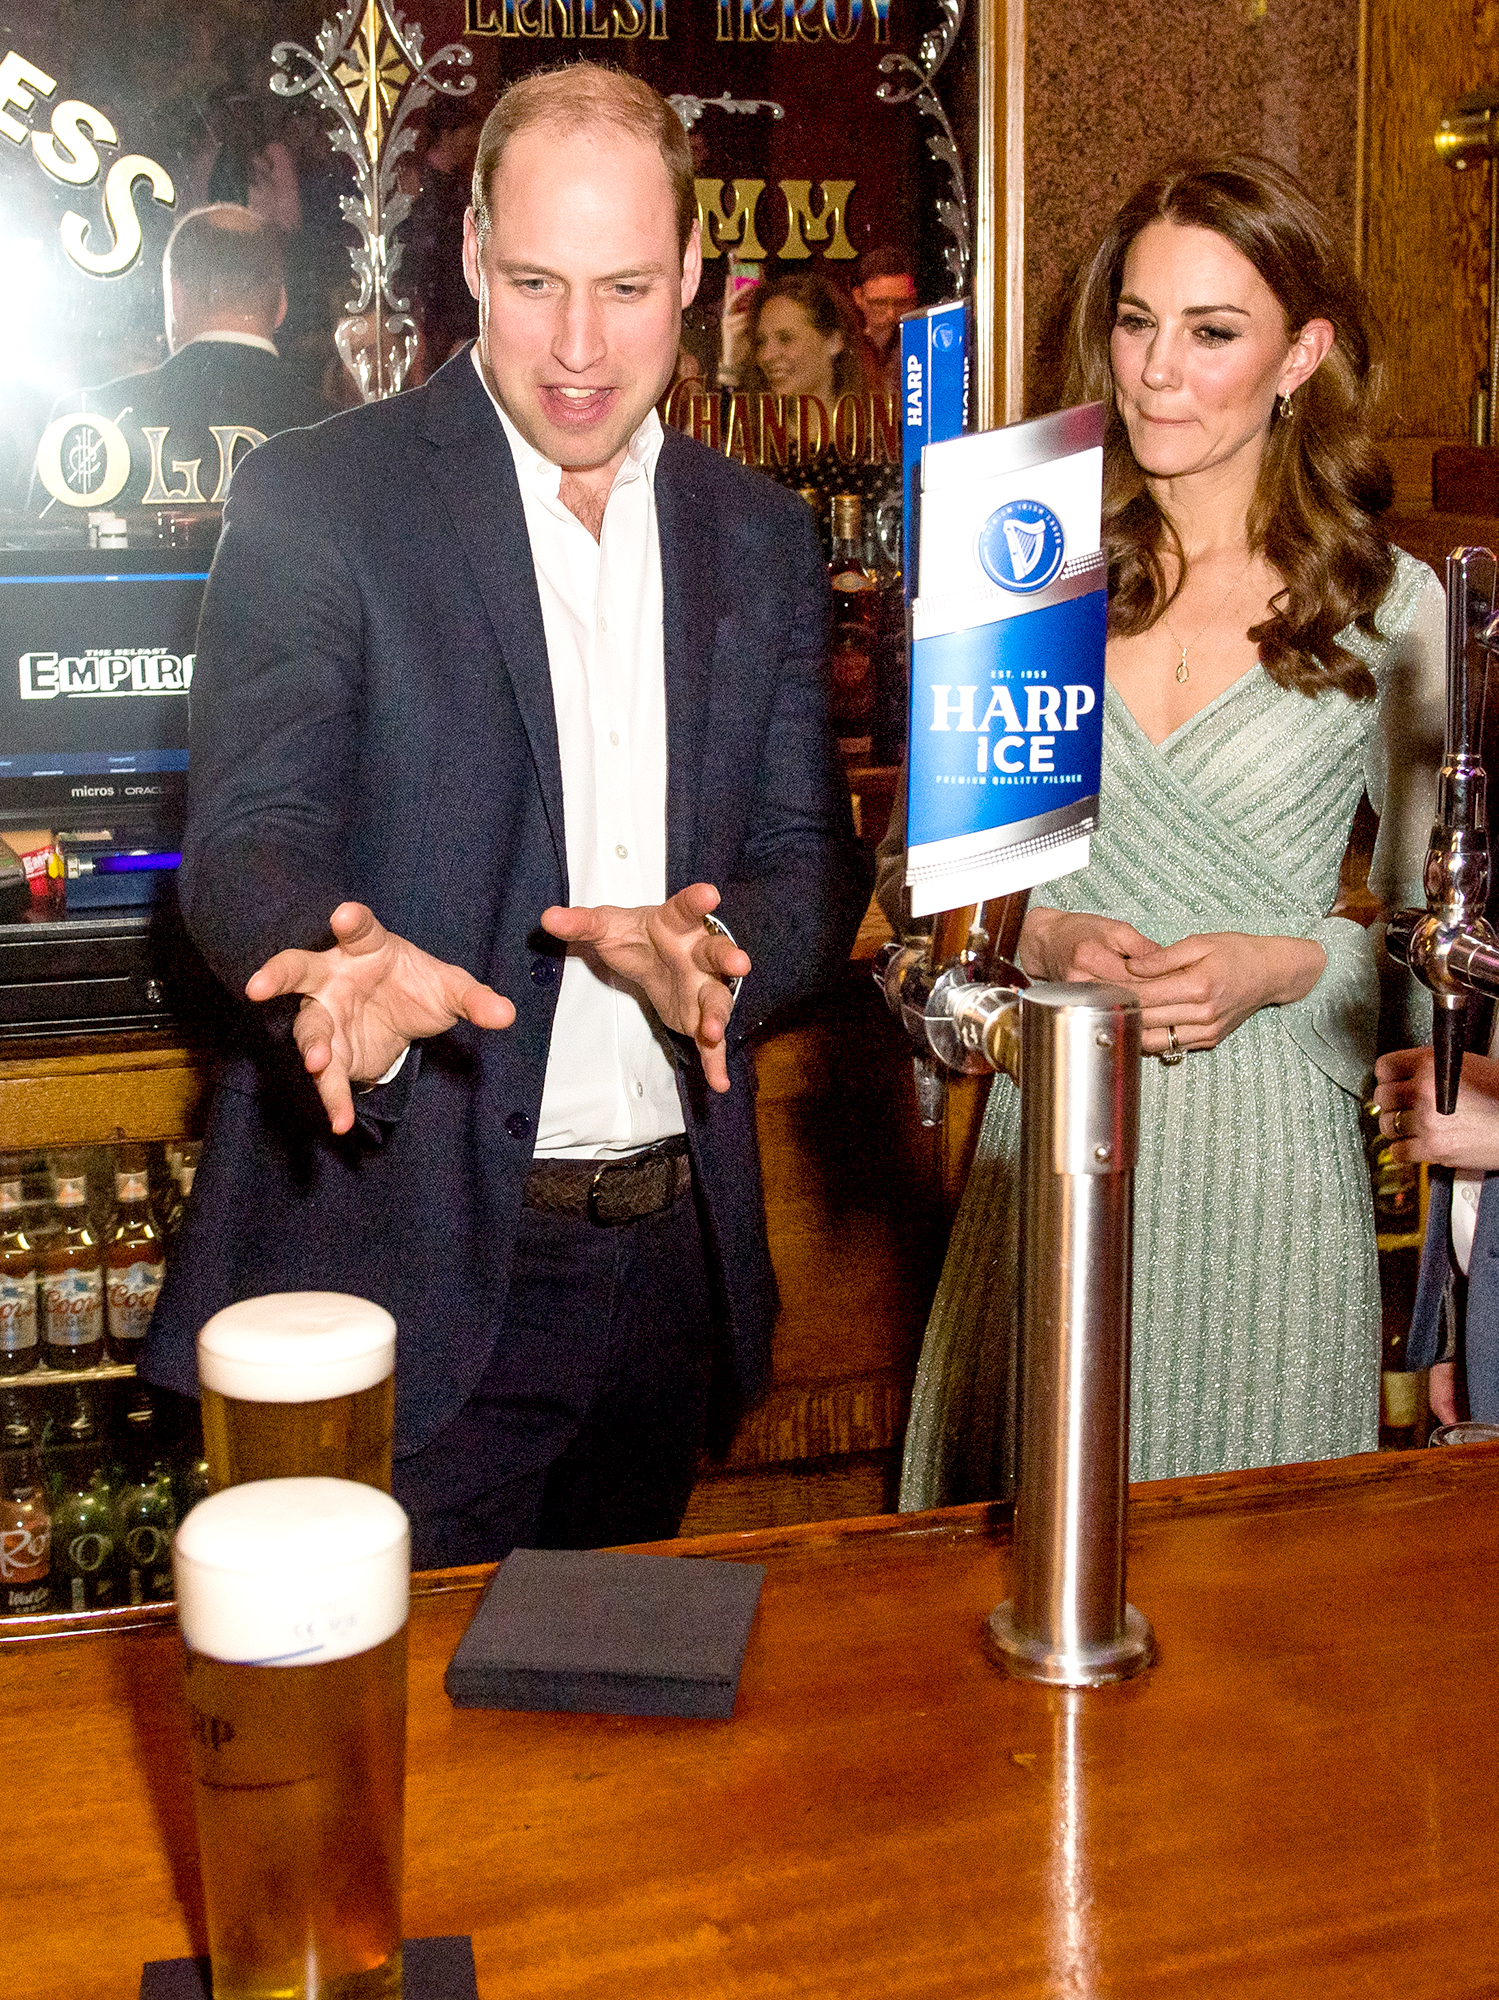 Putting-a-Spell-on-Some-Beer-duchess-kate-prince-william-beer - Meanwhile, Prince William stepped behind the bar and appeared to put a spell on a pair of beers resting on the bar while his wife looked on during that same February 2019 trip to Belfast.